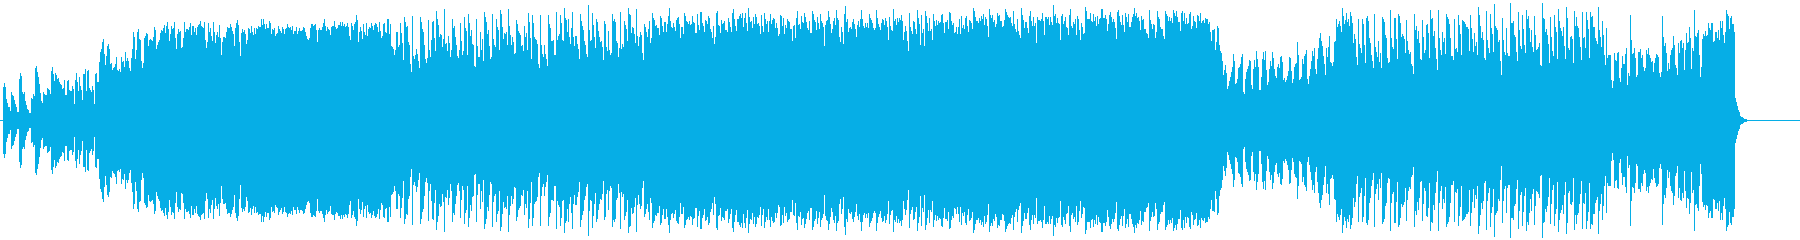 Dramatic and humble pop's reproduced waveform